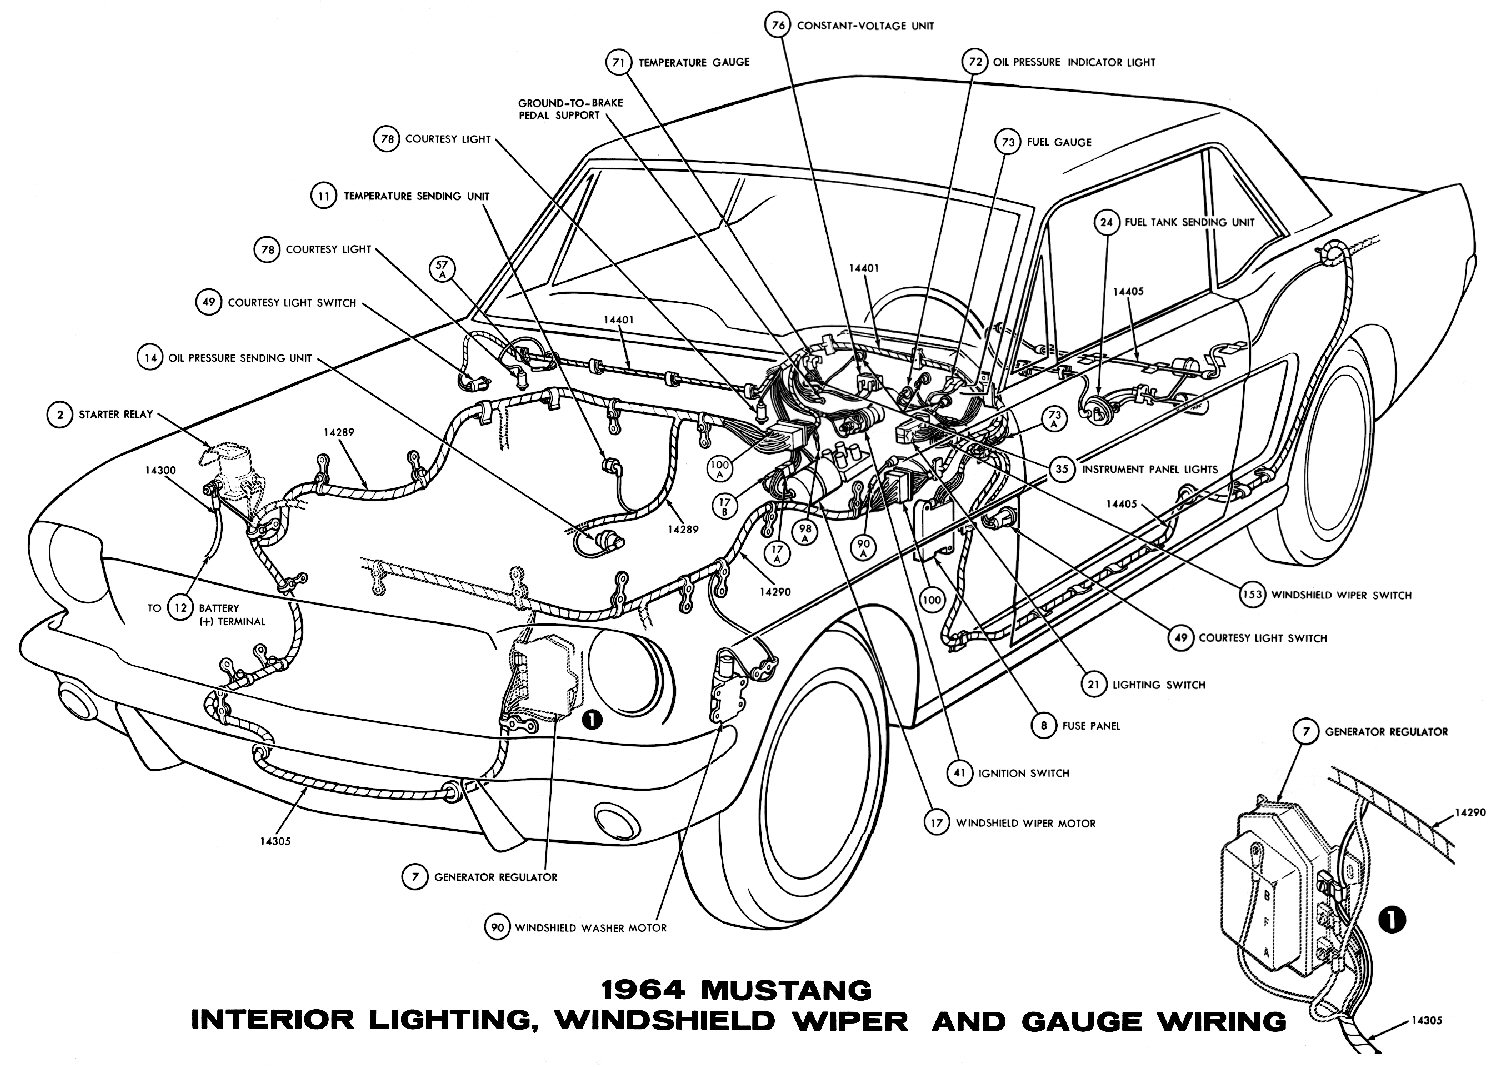 1964 mustang wiring diagrams - average joe restoration automobile parts schematics